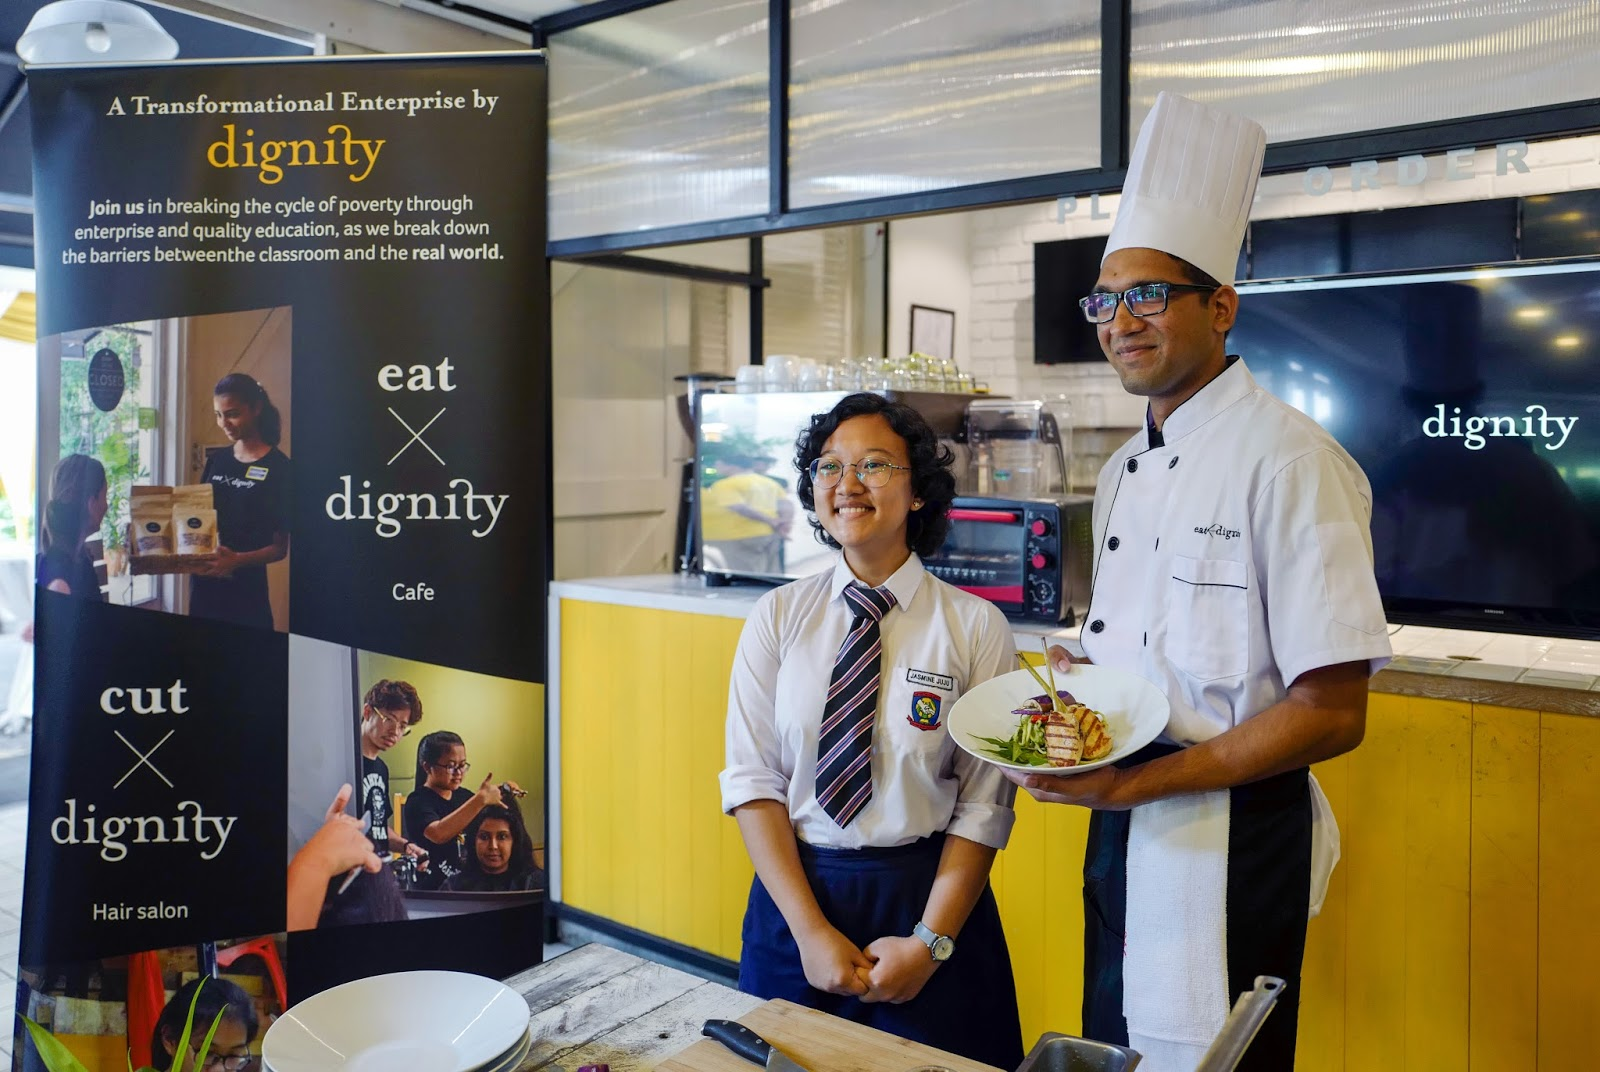 Event: The Eat X Dignity Relaunch